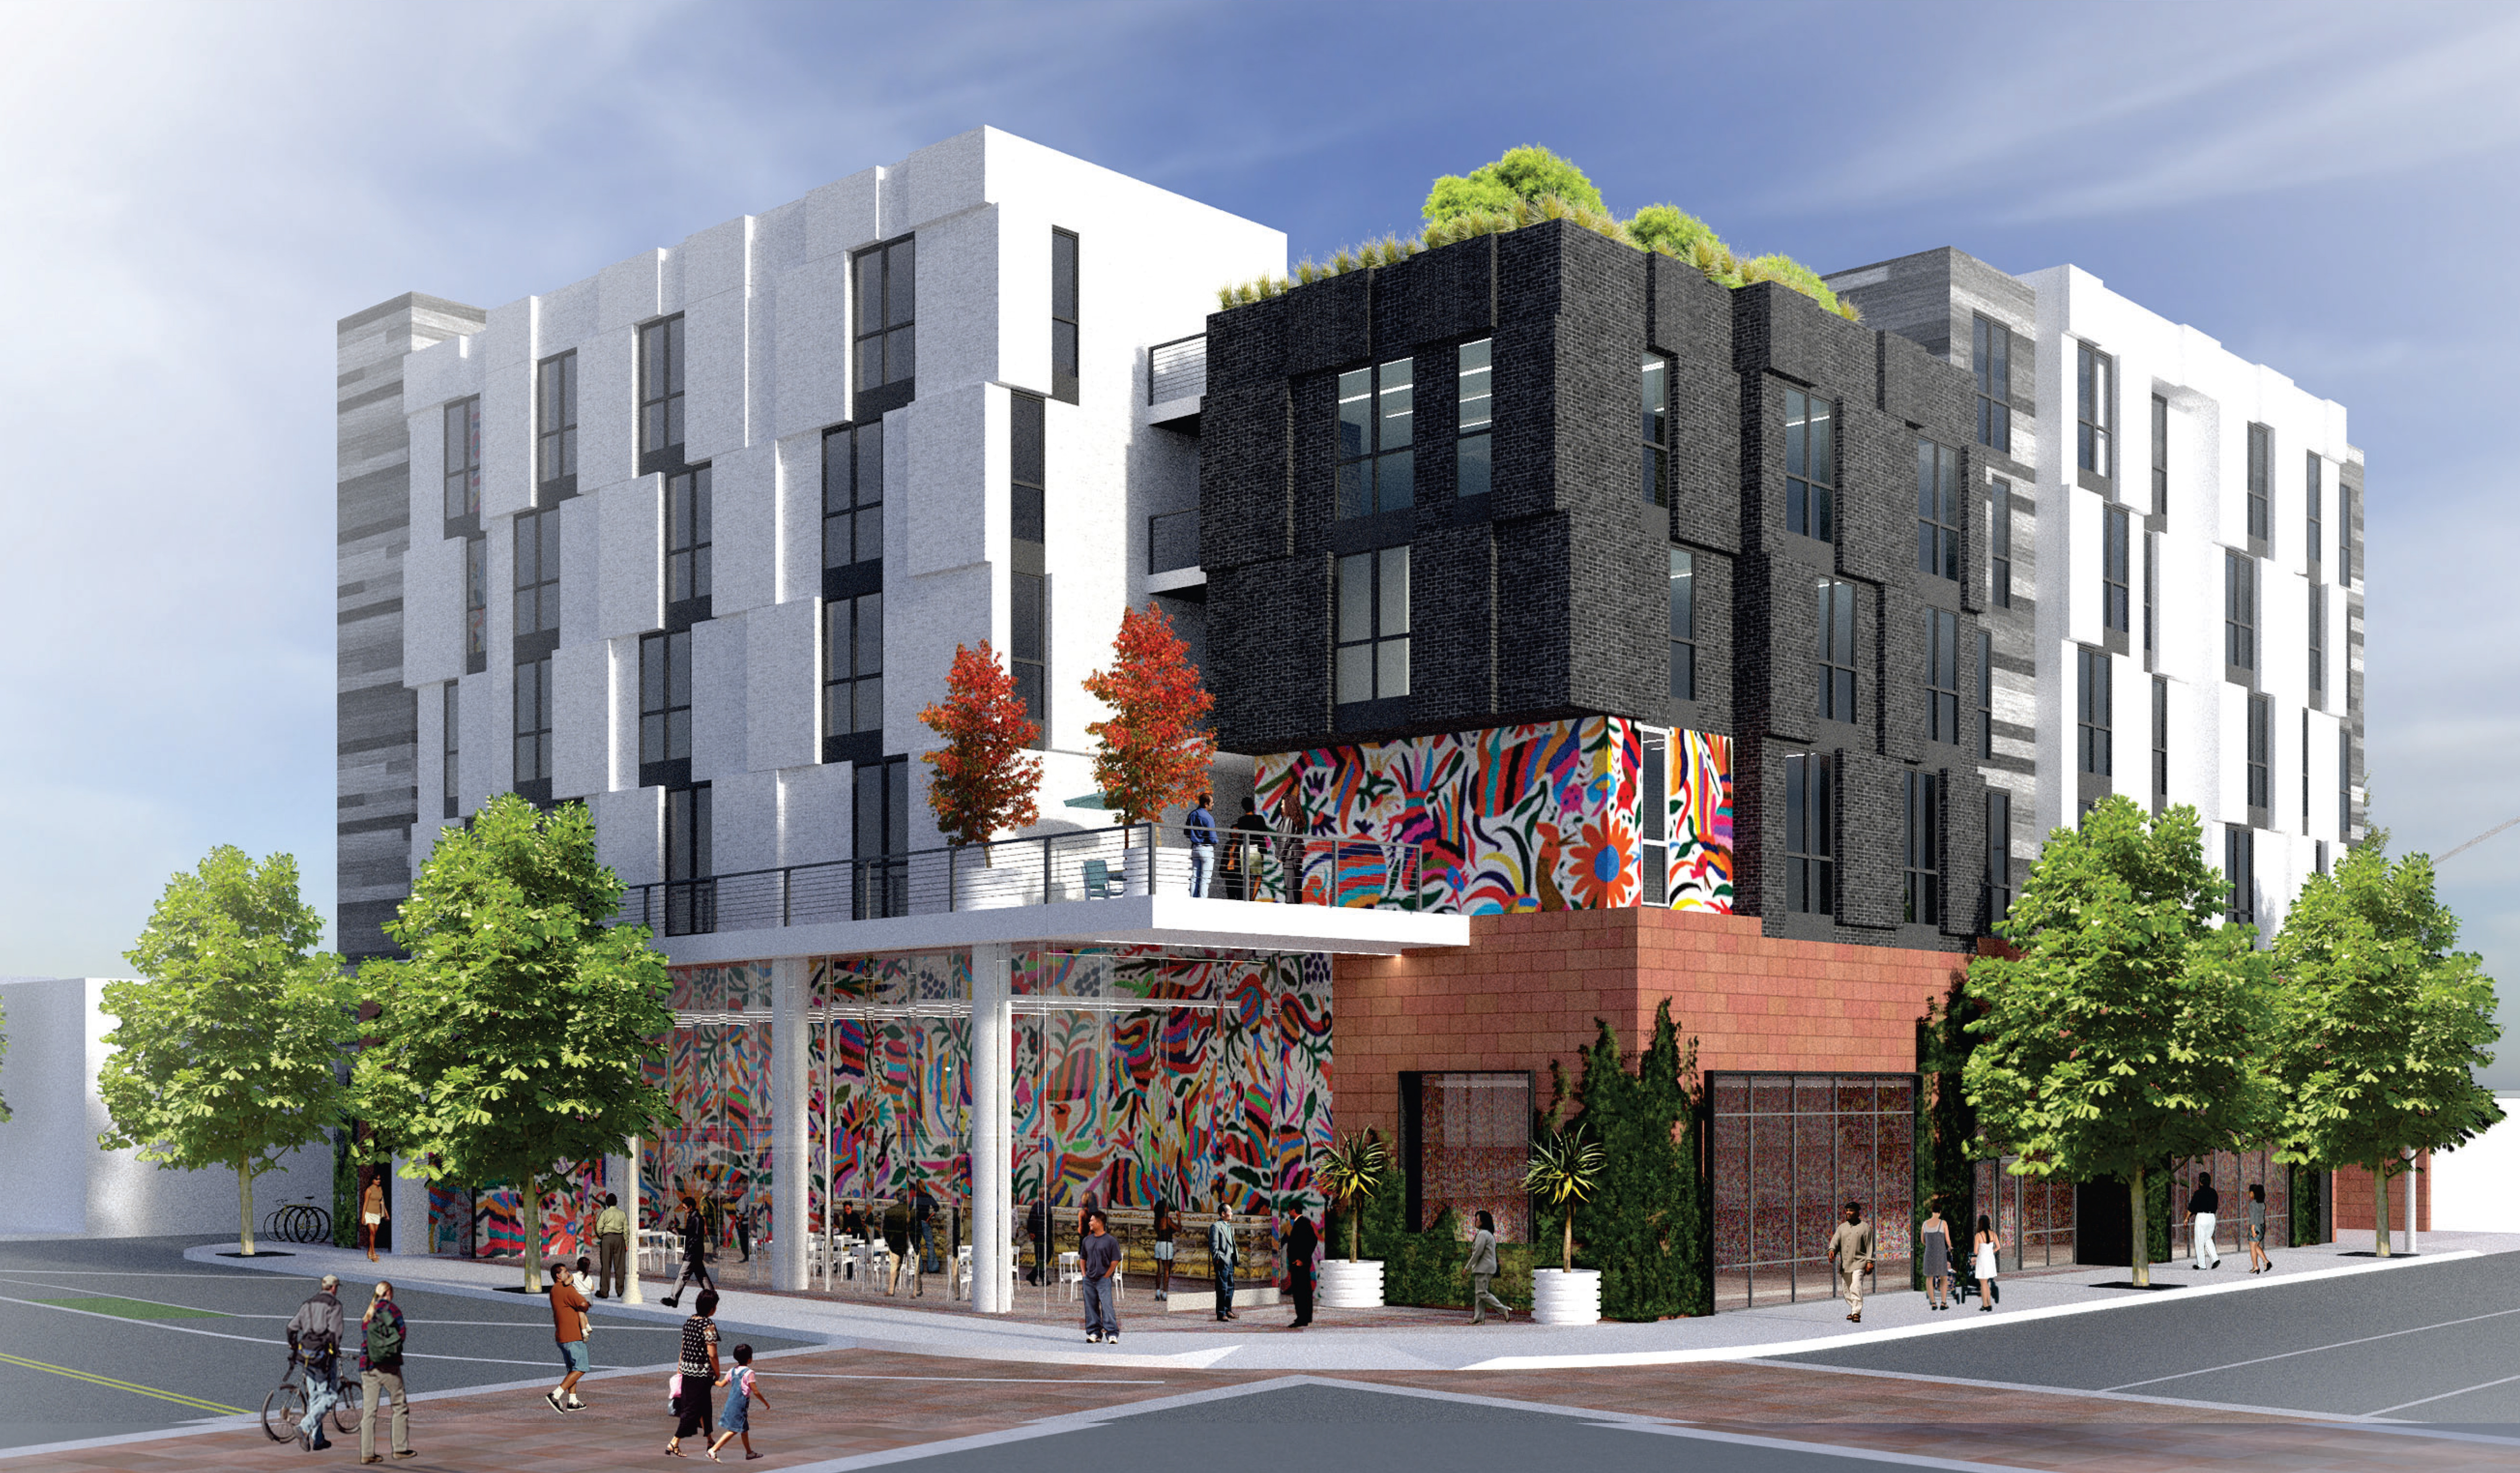 Boyle Heights native developing affordable housing across from Mariachi Plaza